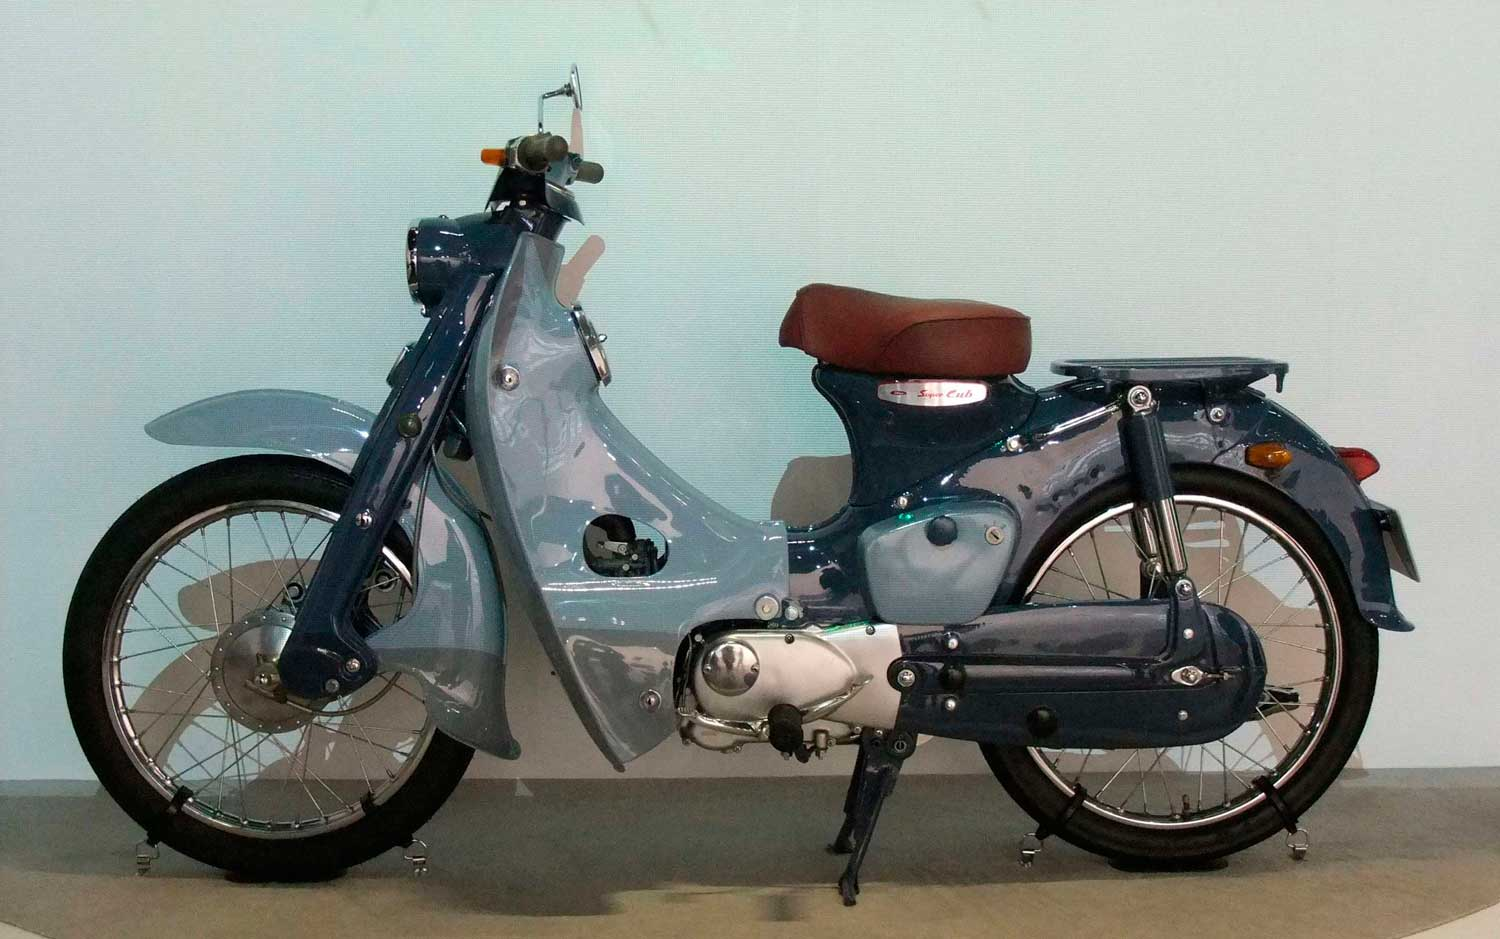 The Super Cub – the most popular motorcycle in the world!